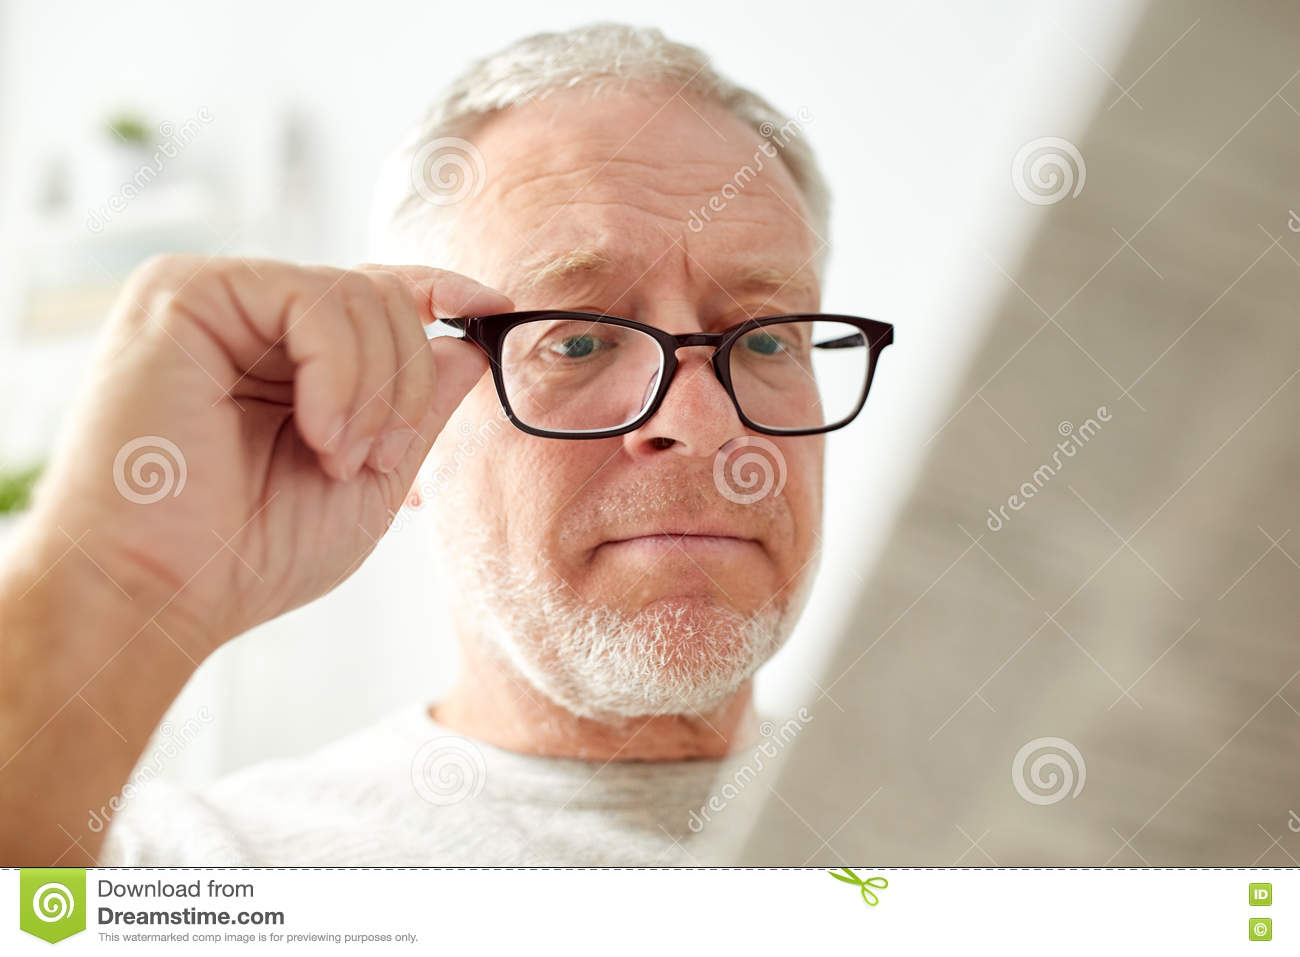 Close Up Of Old Man In Glasses Reading Newspaper Stock Image - Image of  living, fresh: 78424063